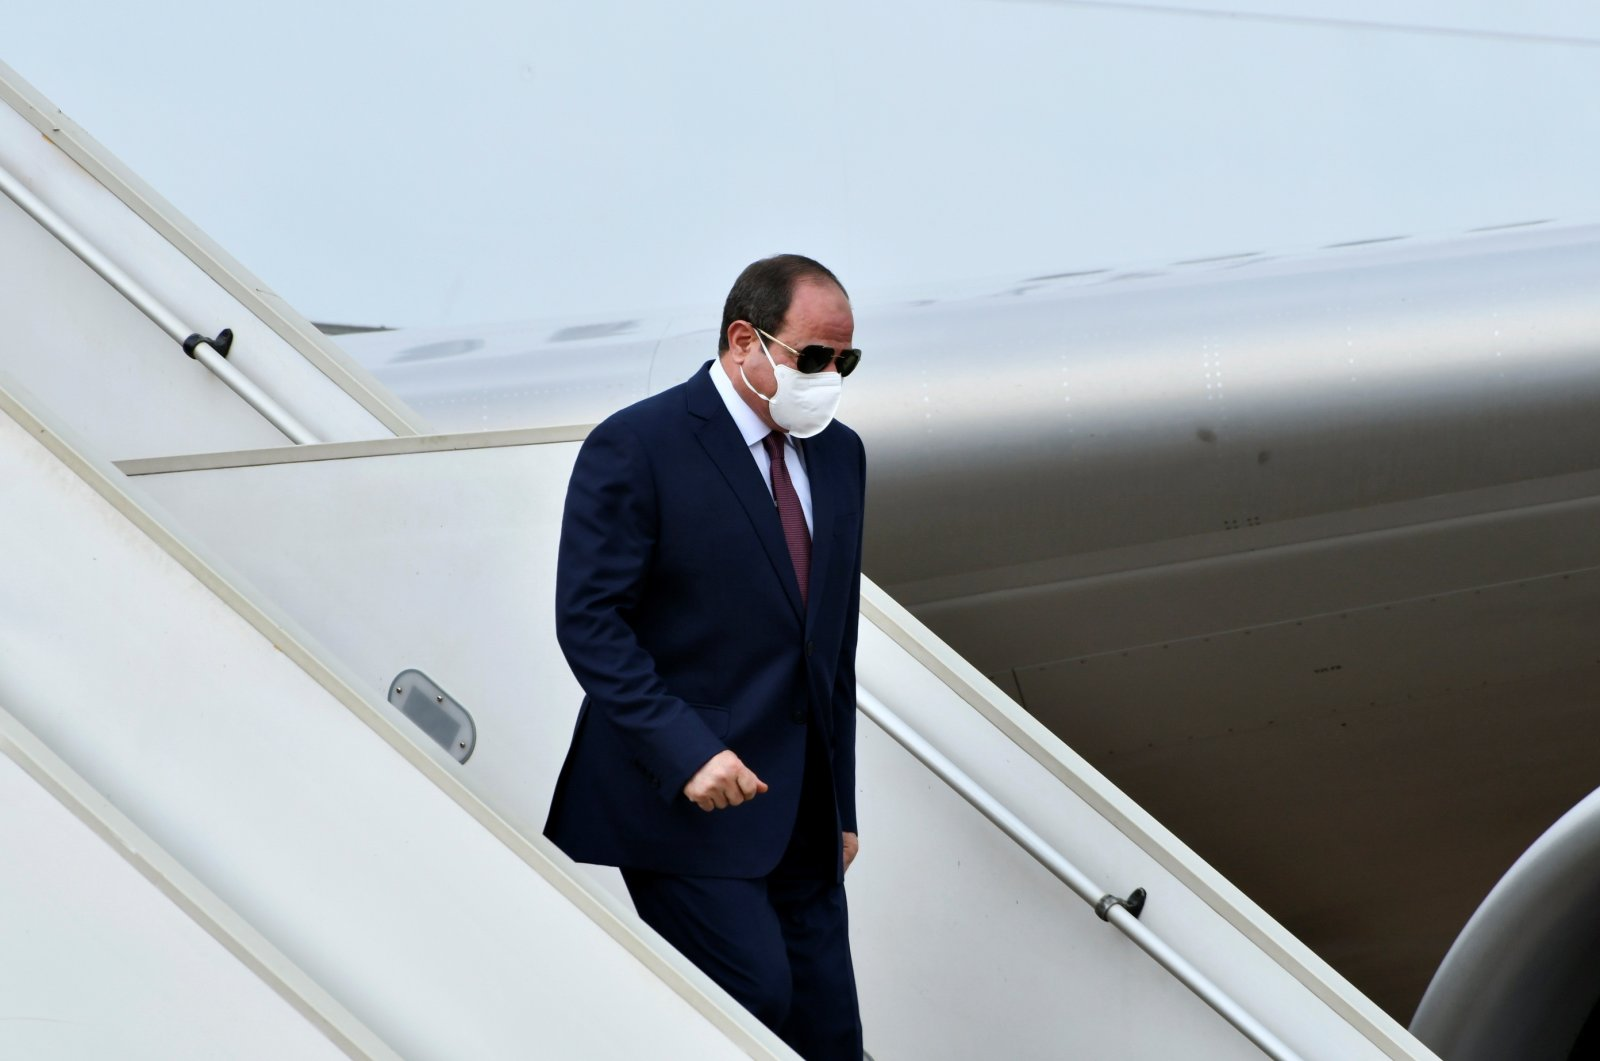 Egypt's President Abdel Fattah el-Sissi, wearing a protective mask, arrives for his visit to South Sudan in Juba, South Sudan, Nov. 28, 2020. (Reuters Photo)